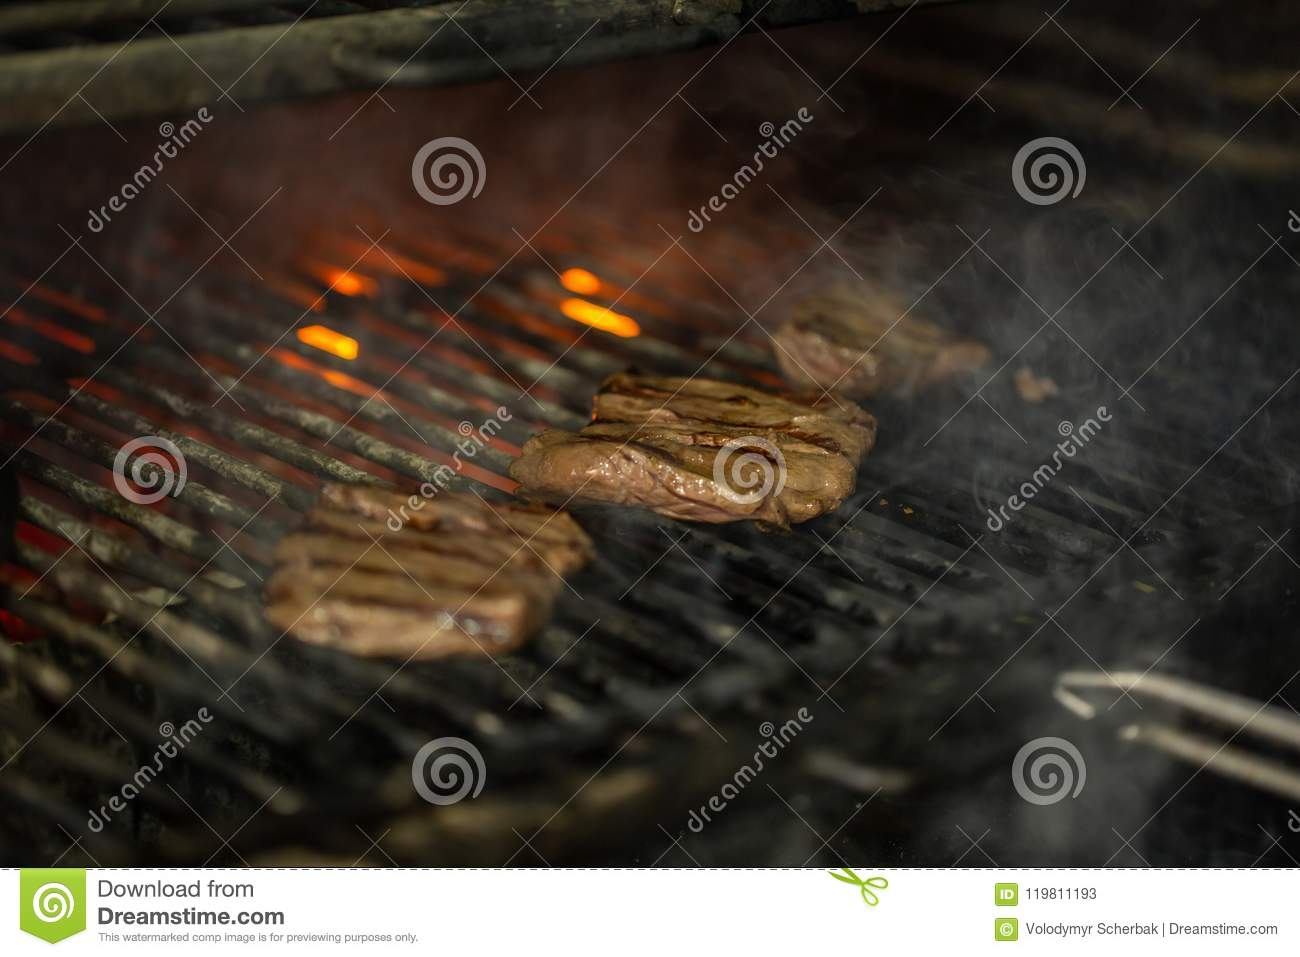 A top sirloin steak flame broiled on a barbecue